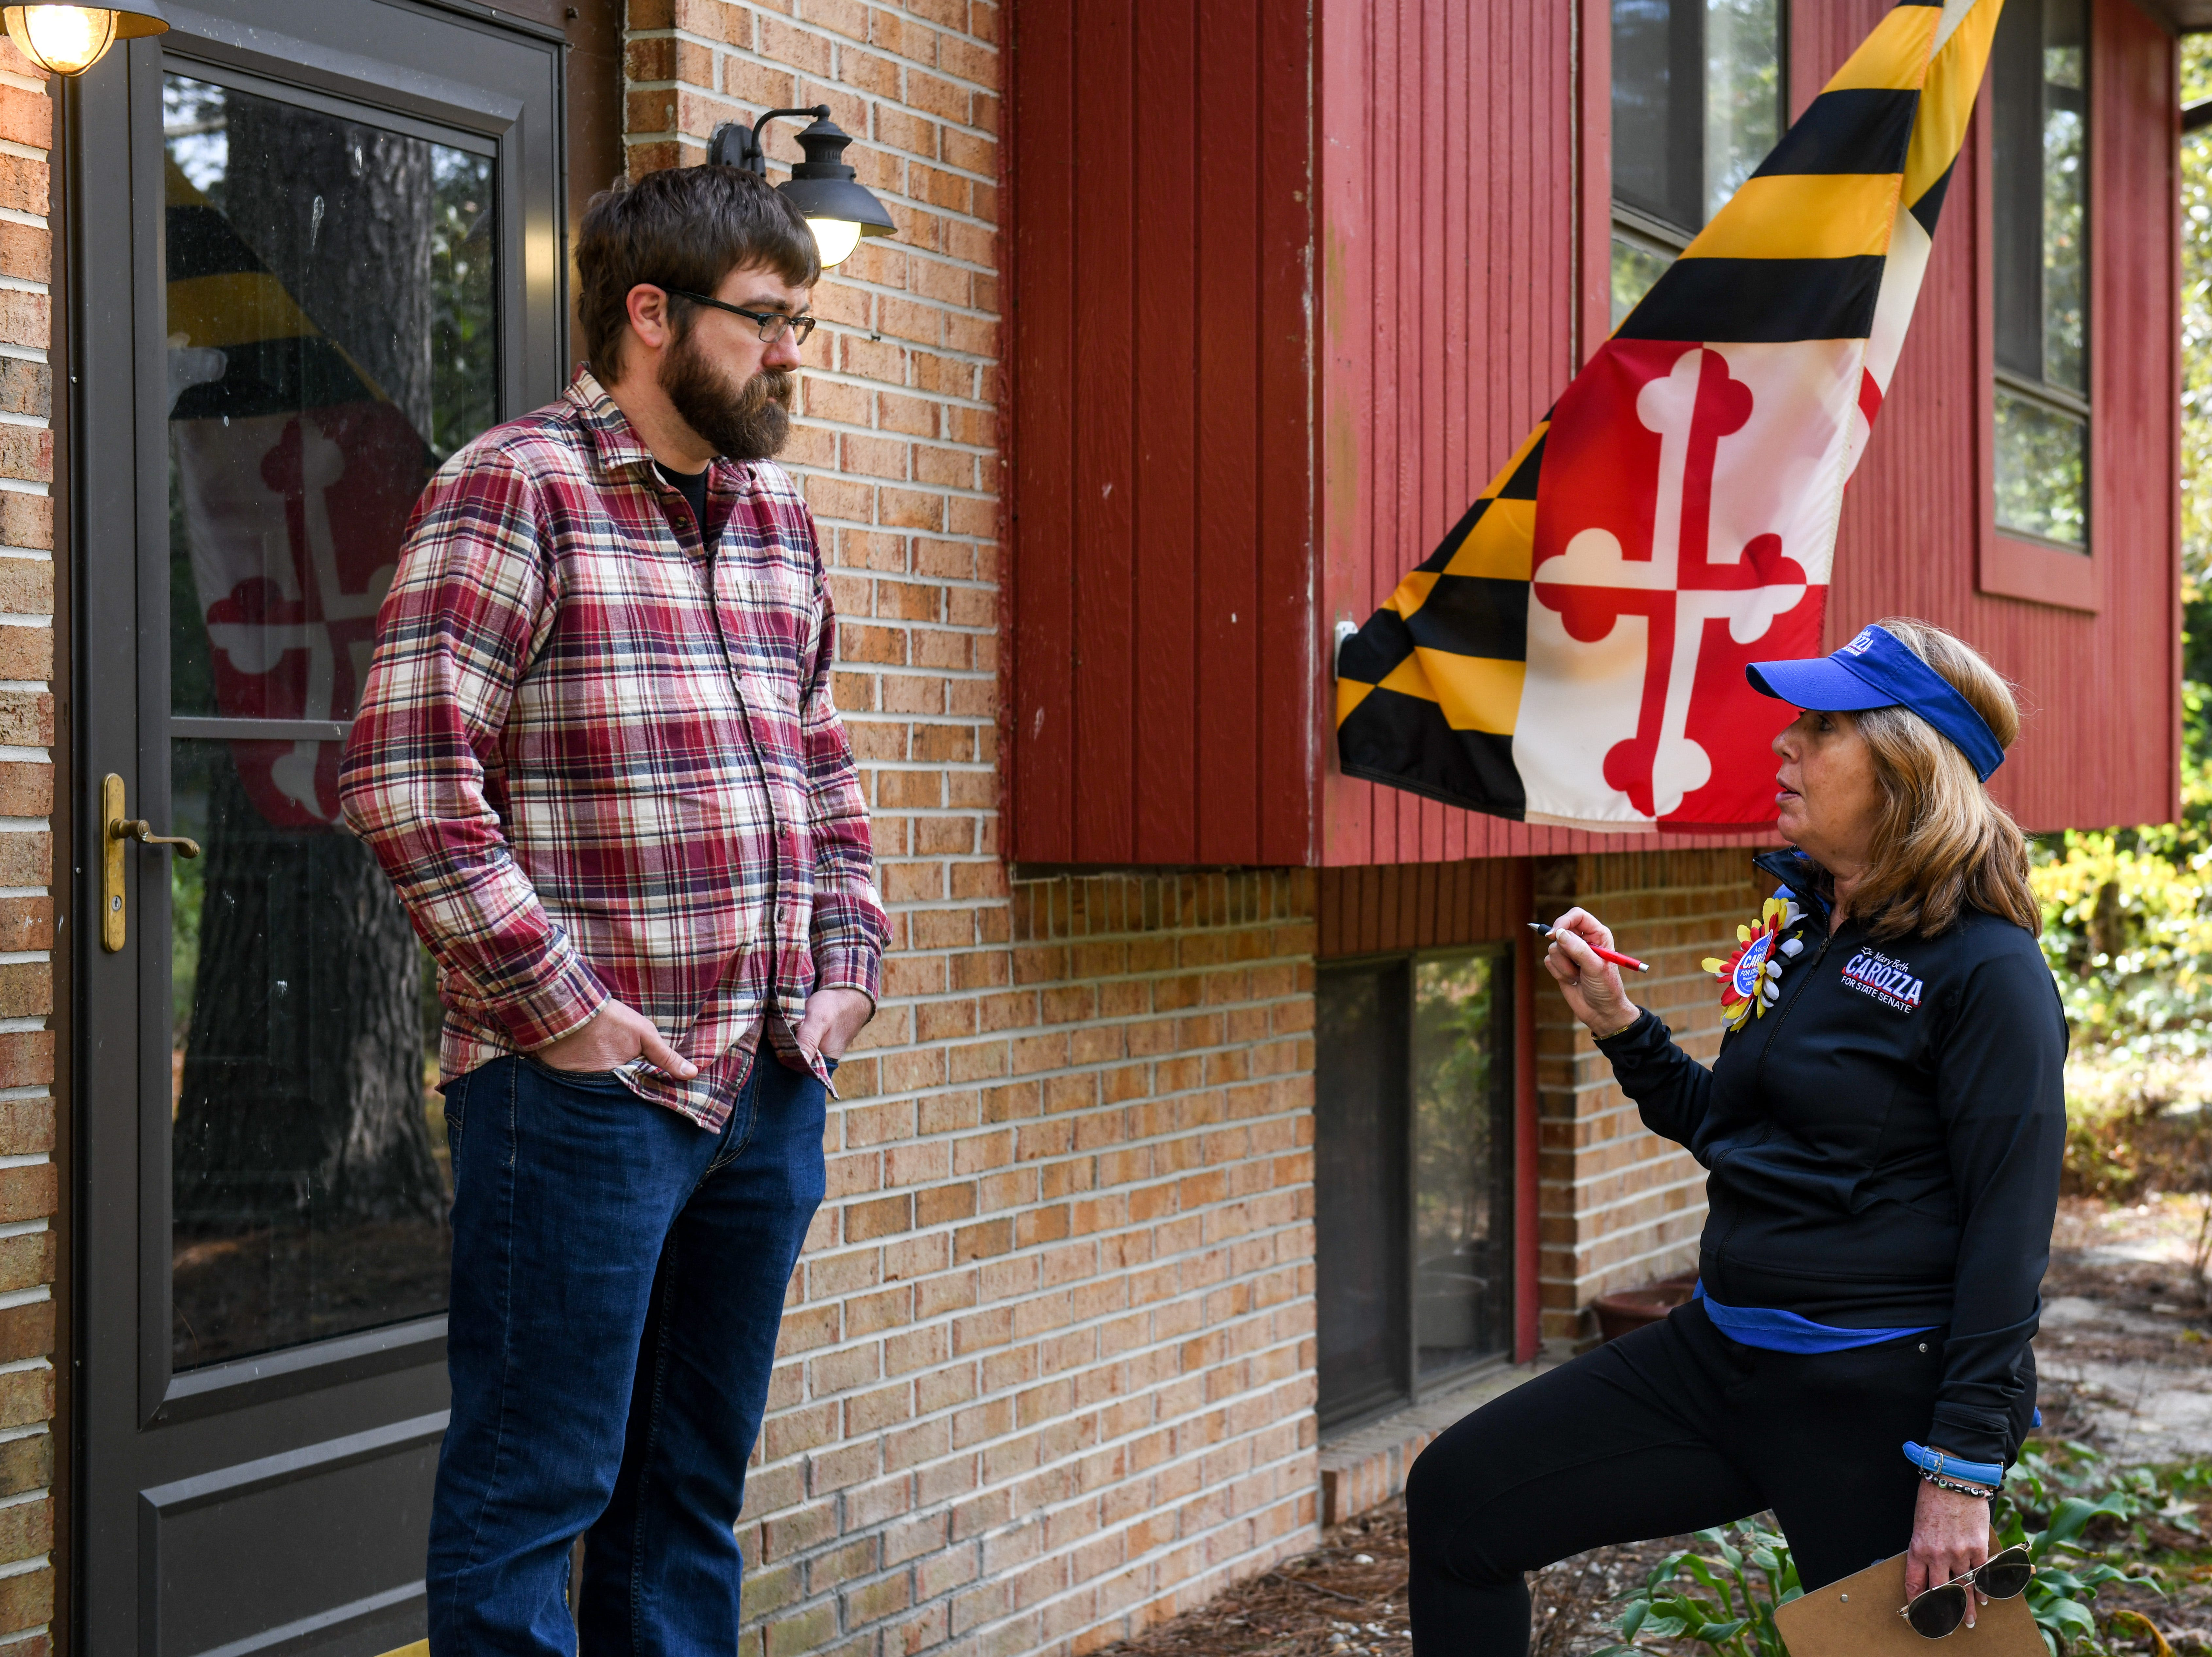 Delegate Mary Beth Carozza, Republican candidate for Maryland State Senate in District 38, talks to voter Chuck Porter while canvassing in Salisbury on Saturday, Oct 13, 2018.